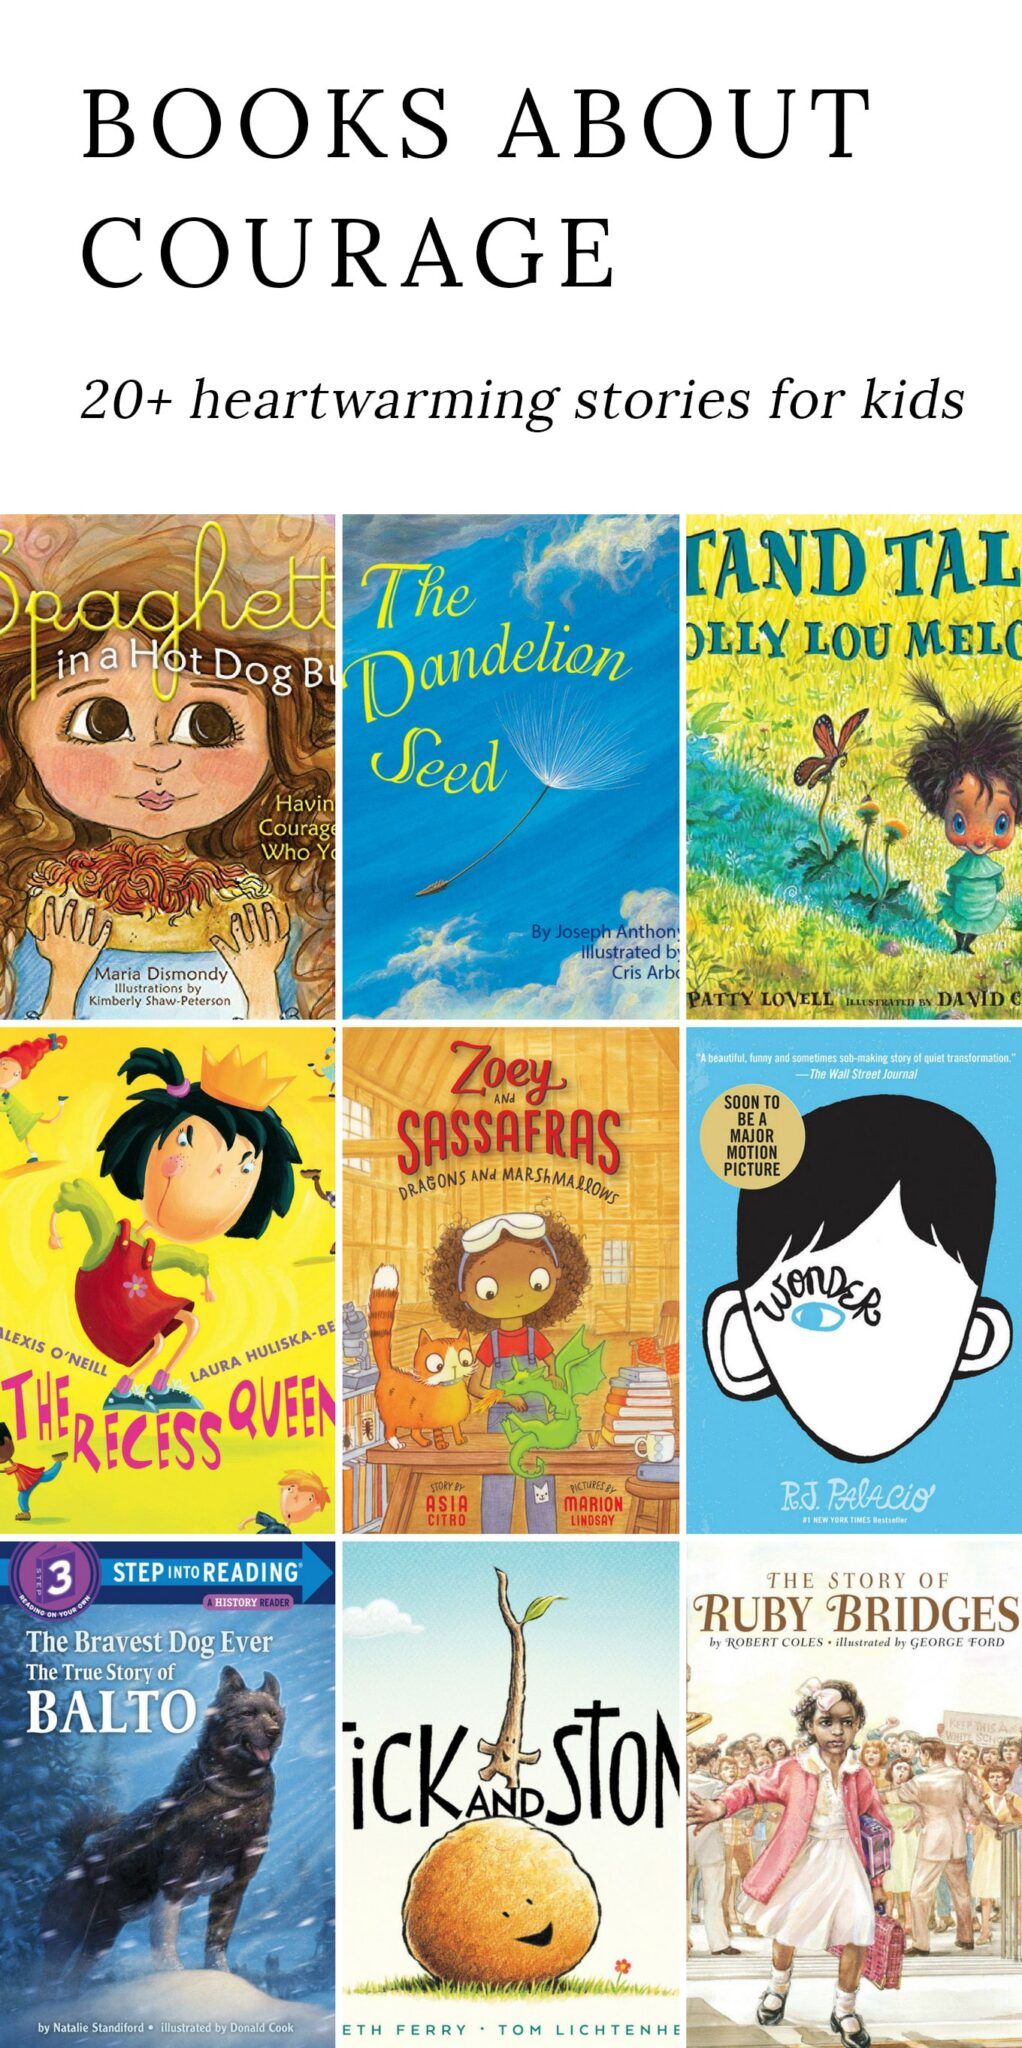 Relatable, heartwarming stories of courage that entertain, educate, and inspire kids to grow in character.